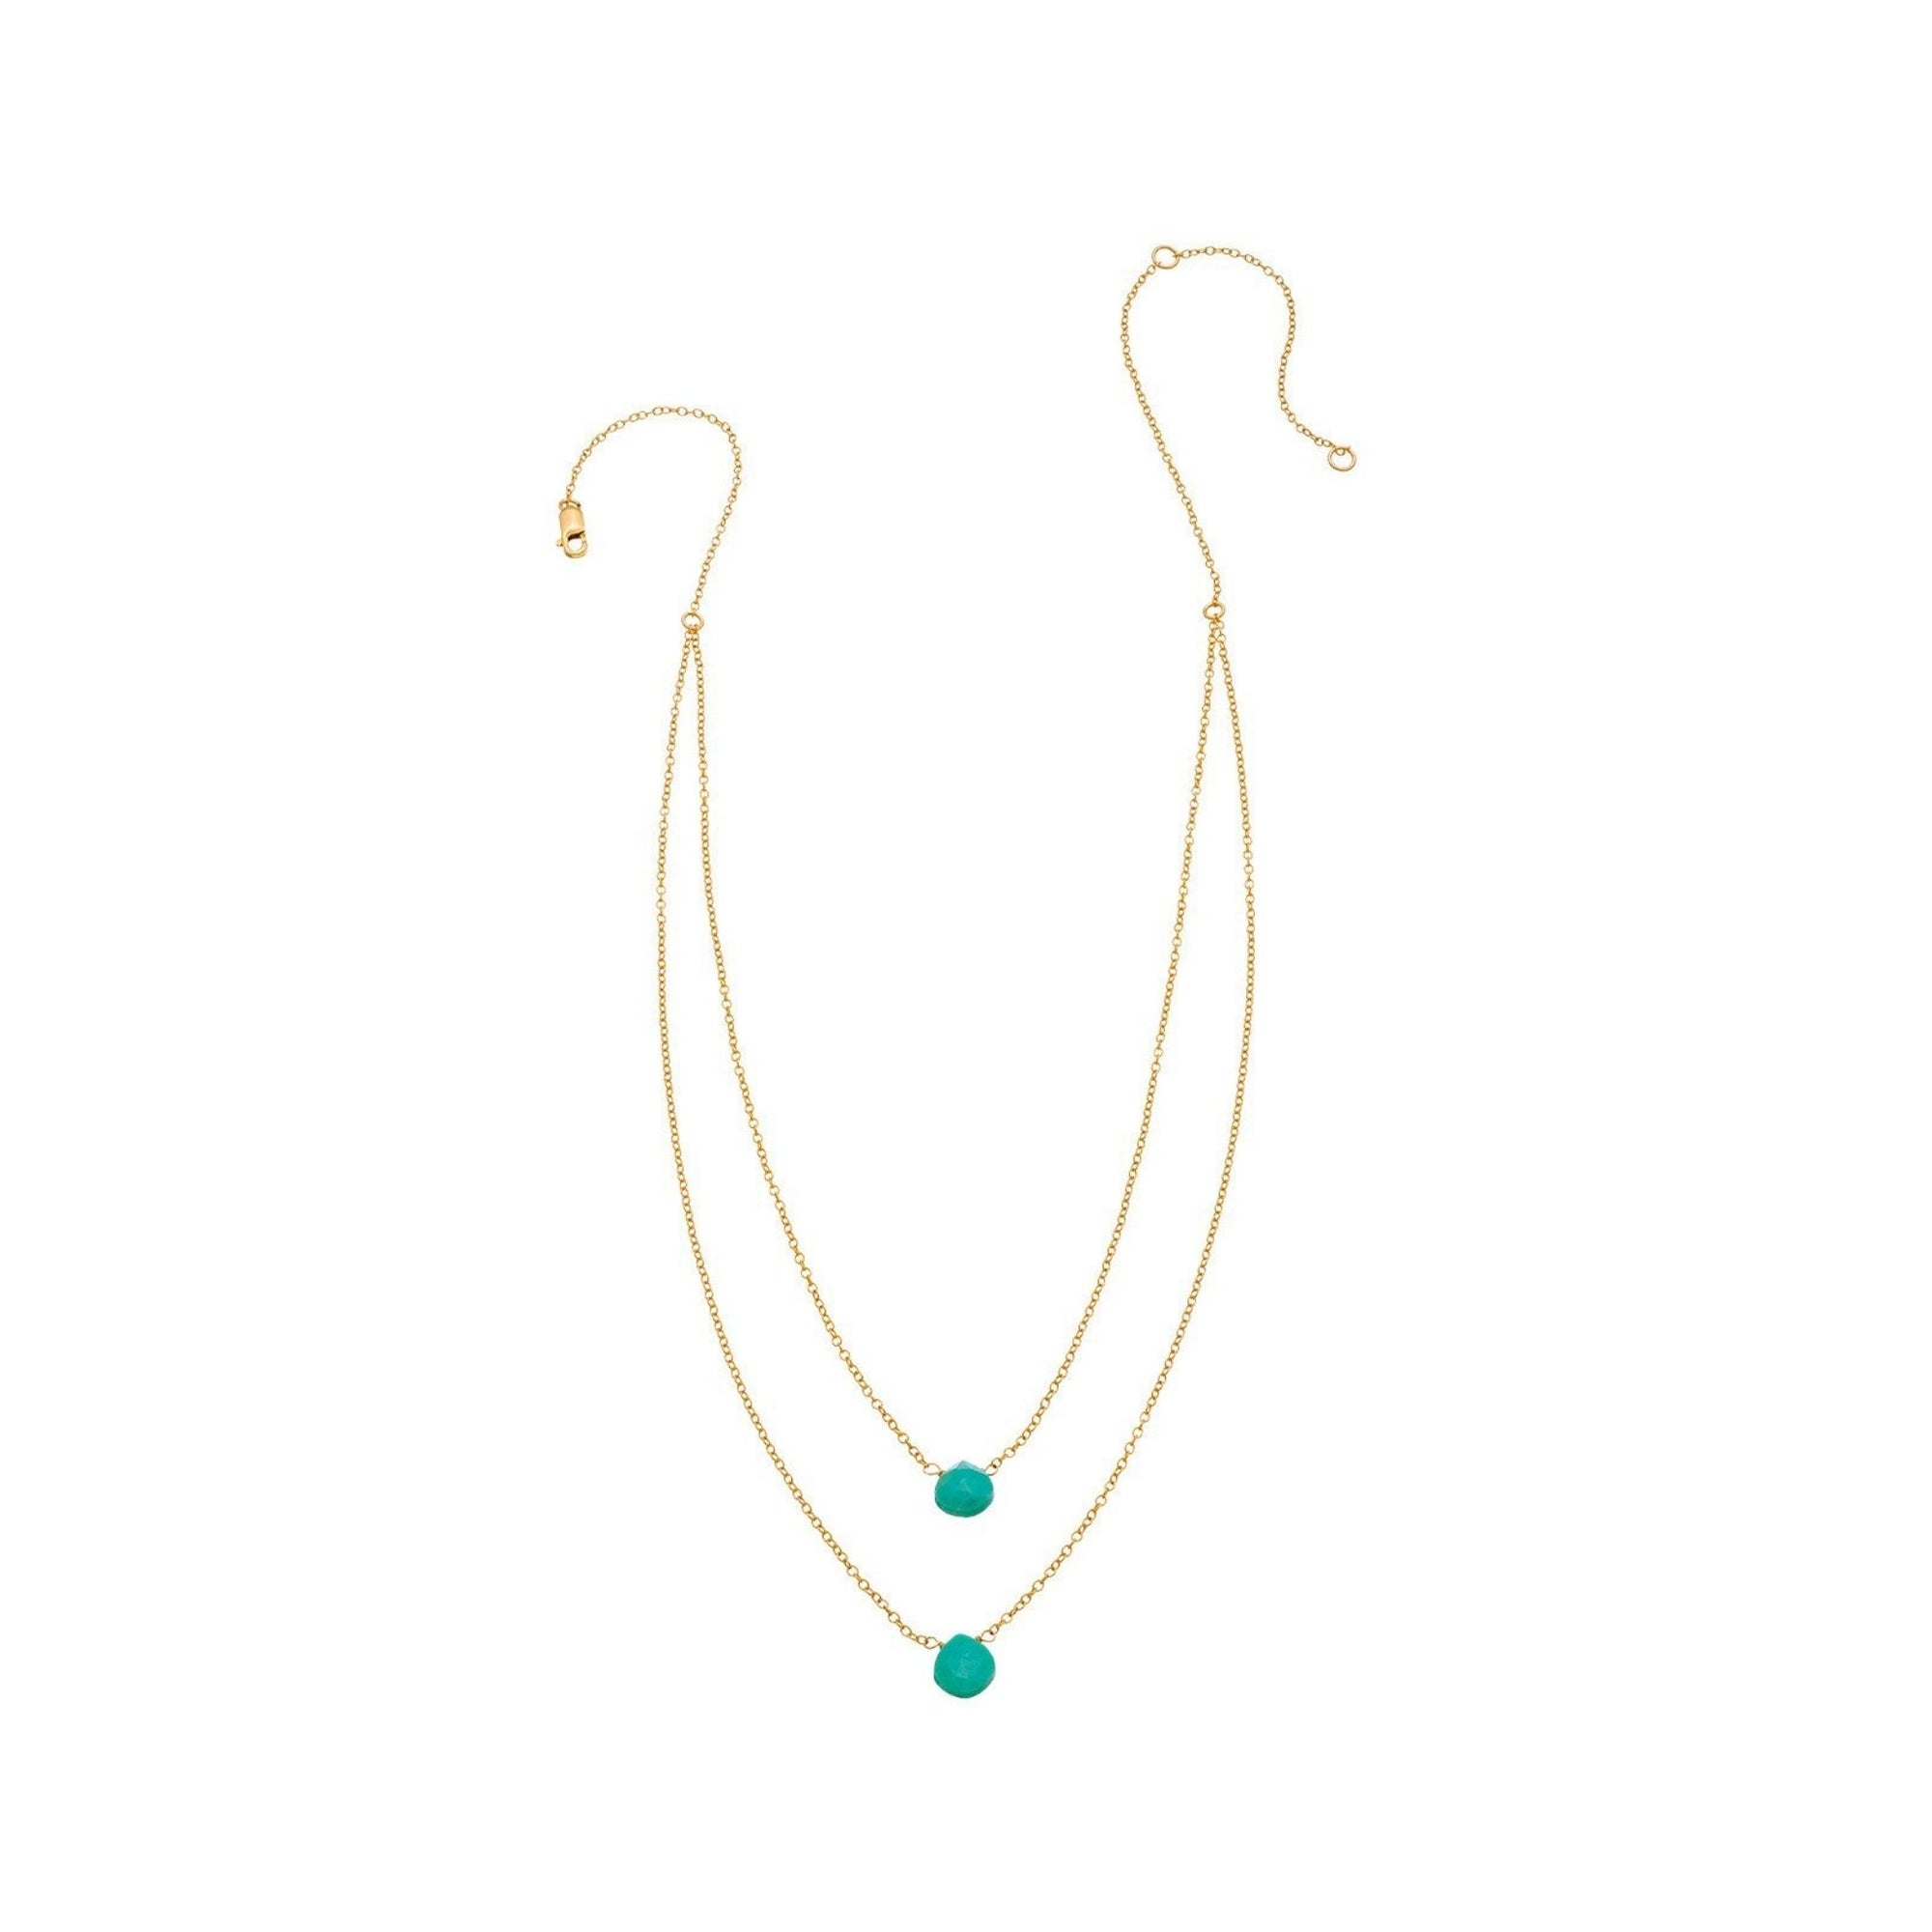 2 Tiny Turquoise Gemstones Drape Necklace